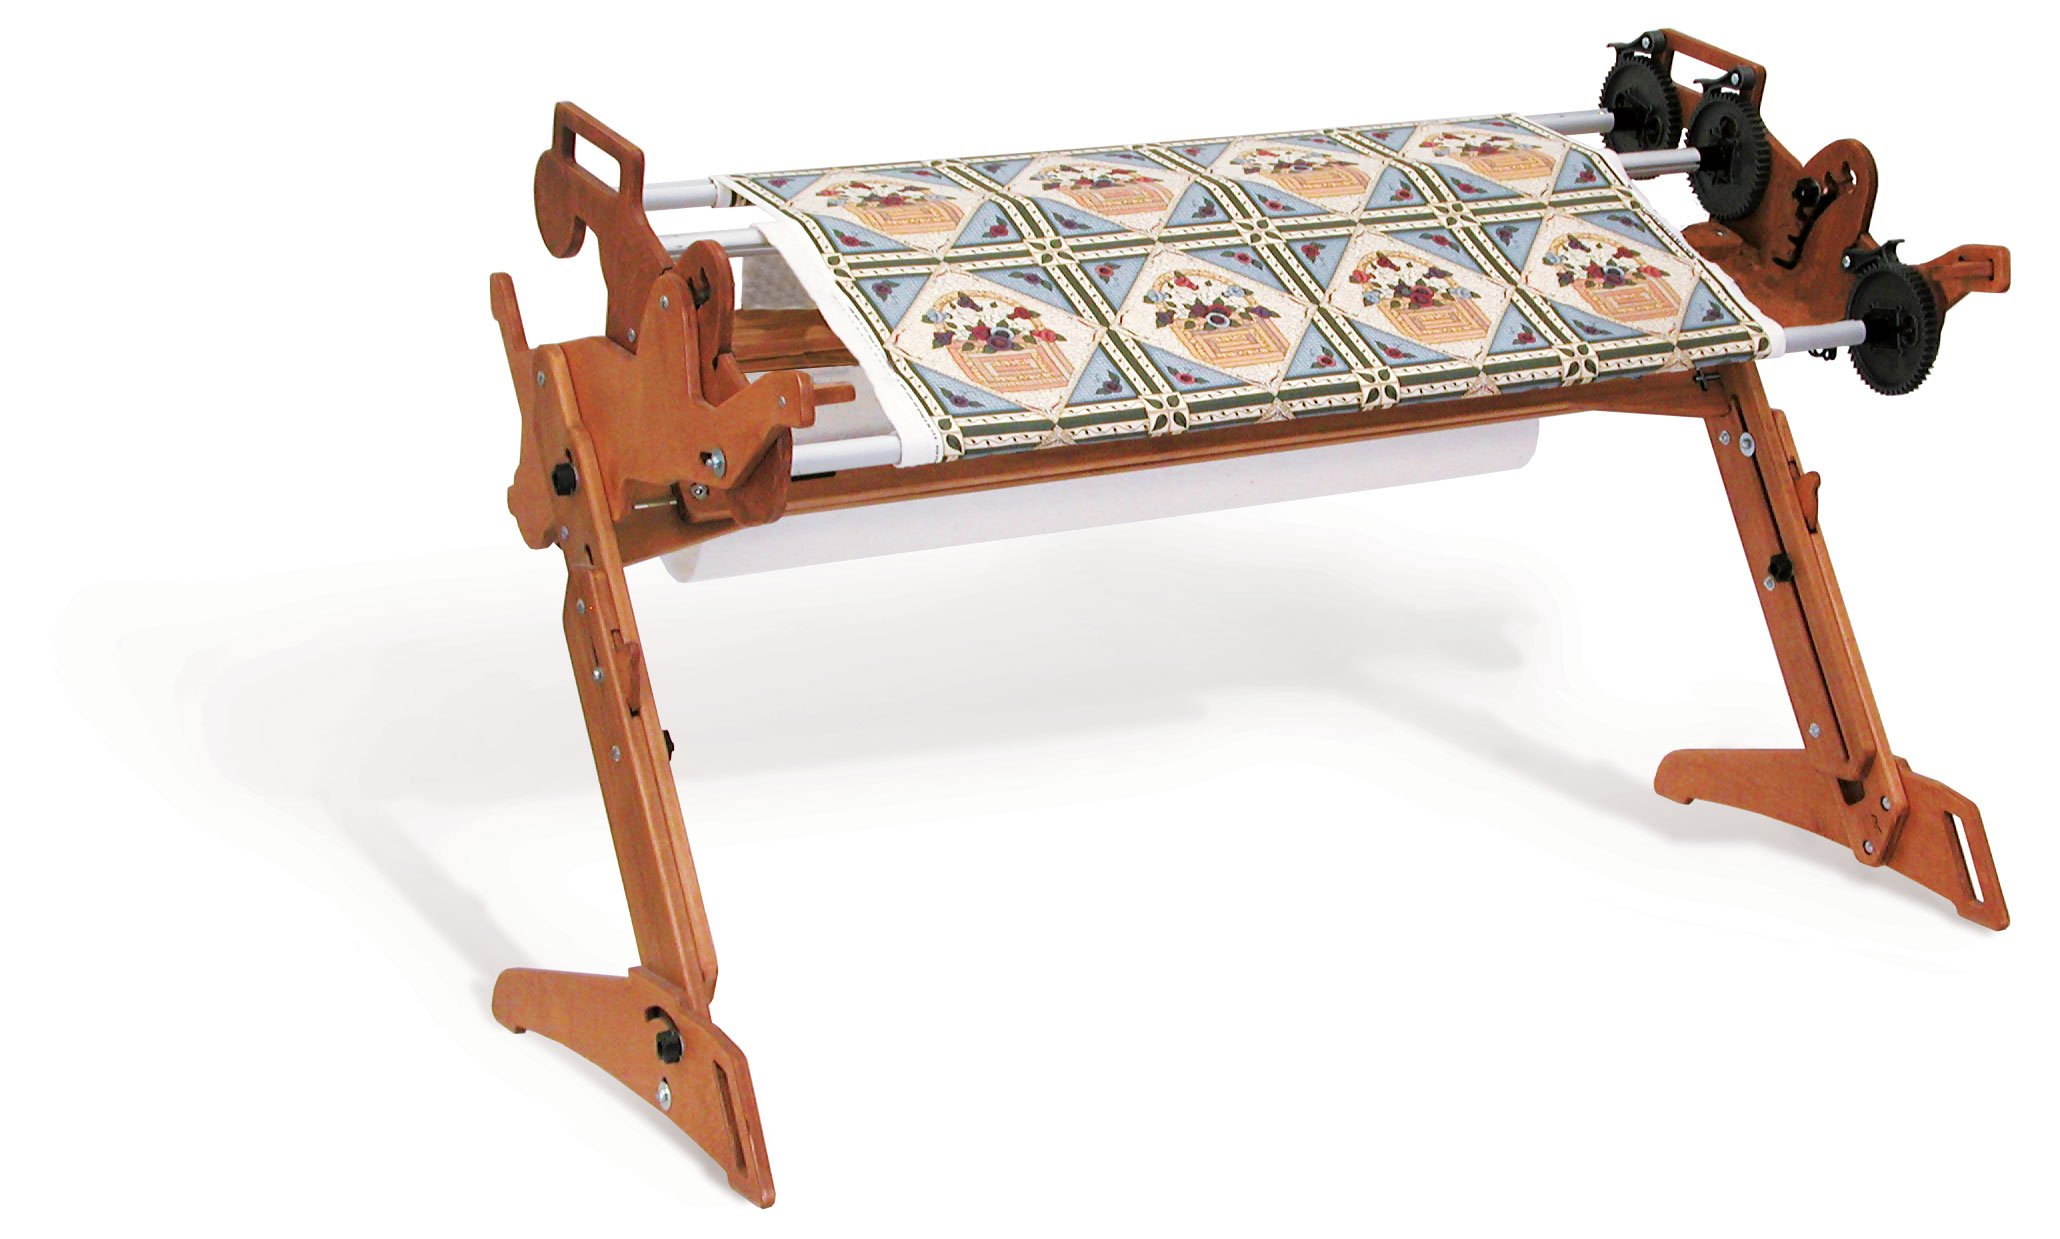 grace z44 fabri fast hand quilting frame adjustable to 4 sizes